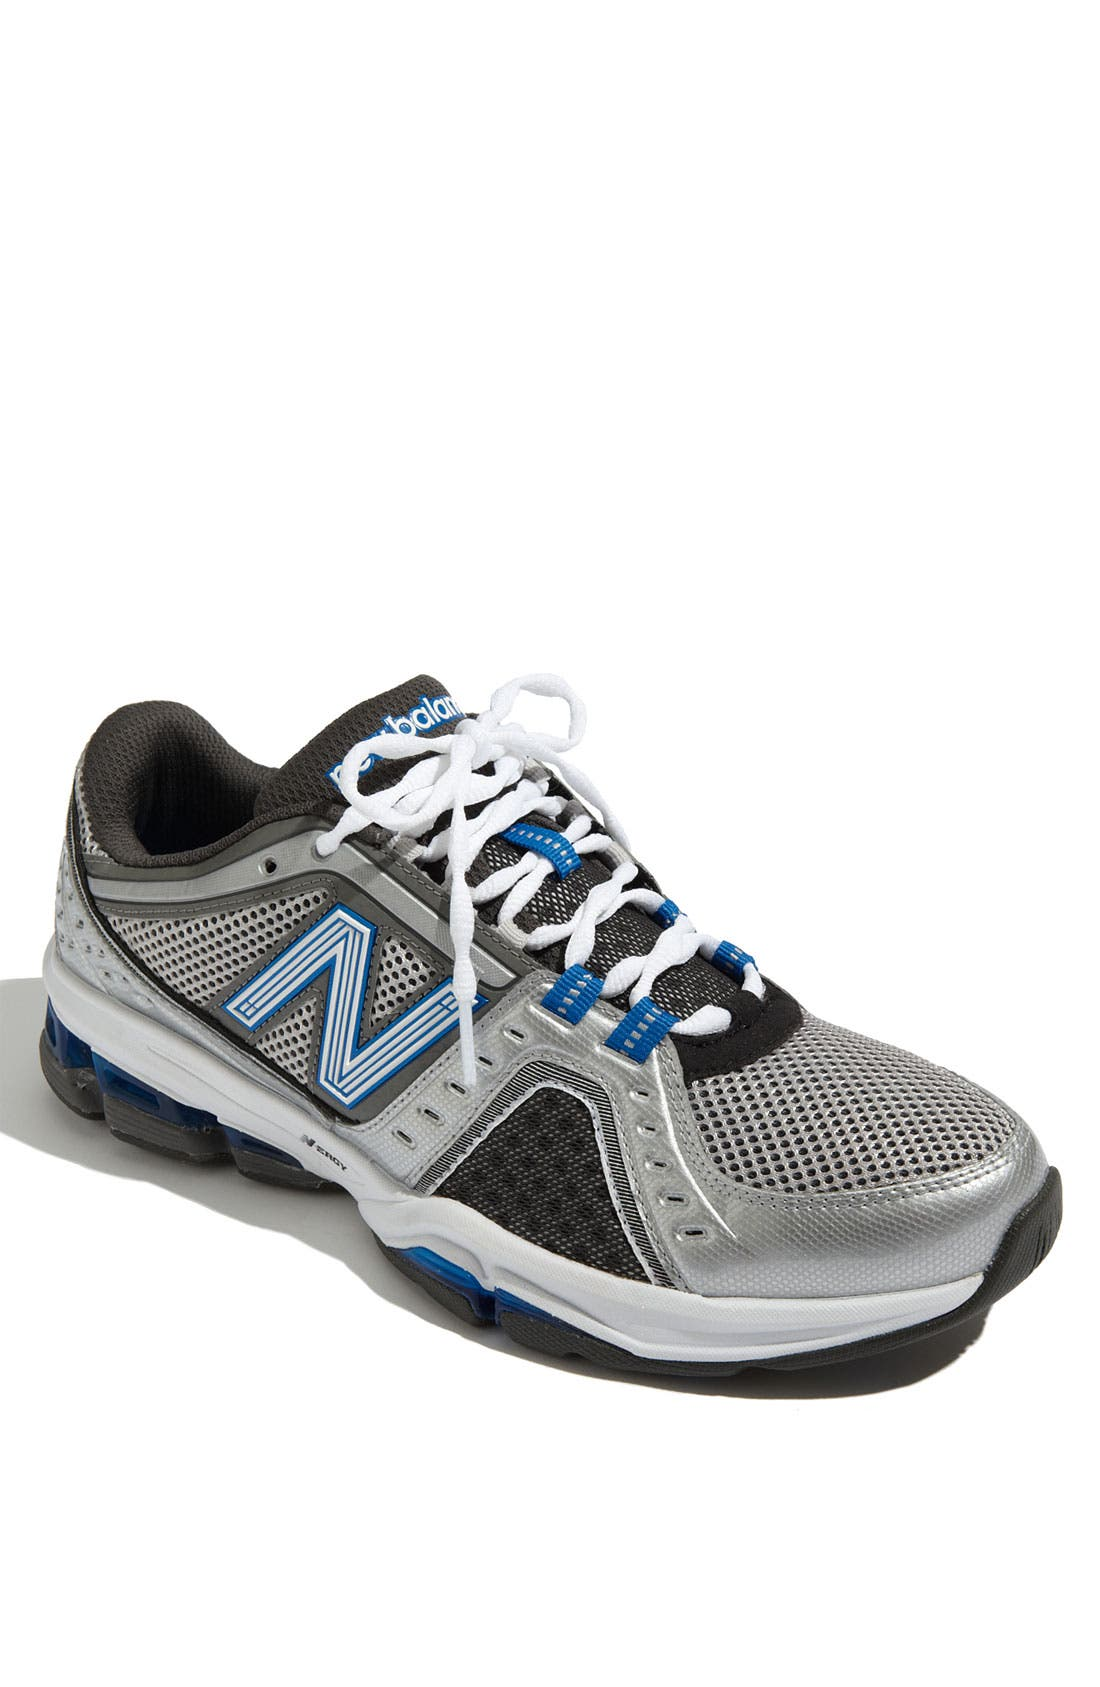 Alternate Image 1 Selected - New Balance '1211' Training Shoe (Men) (Online Only)